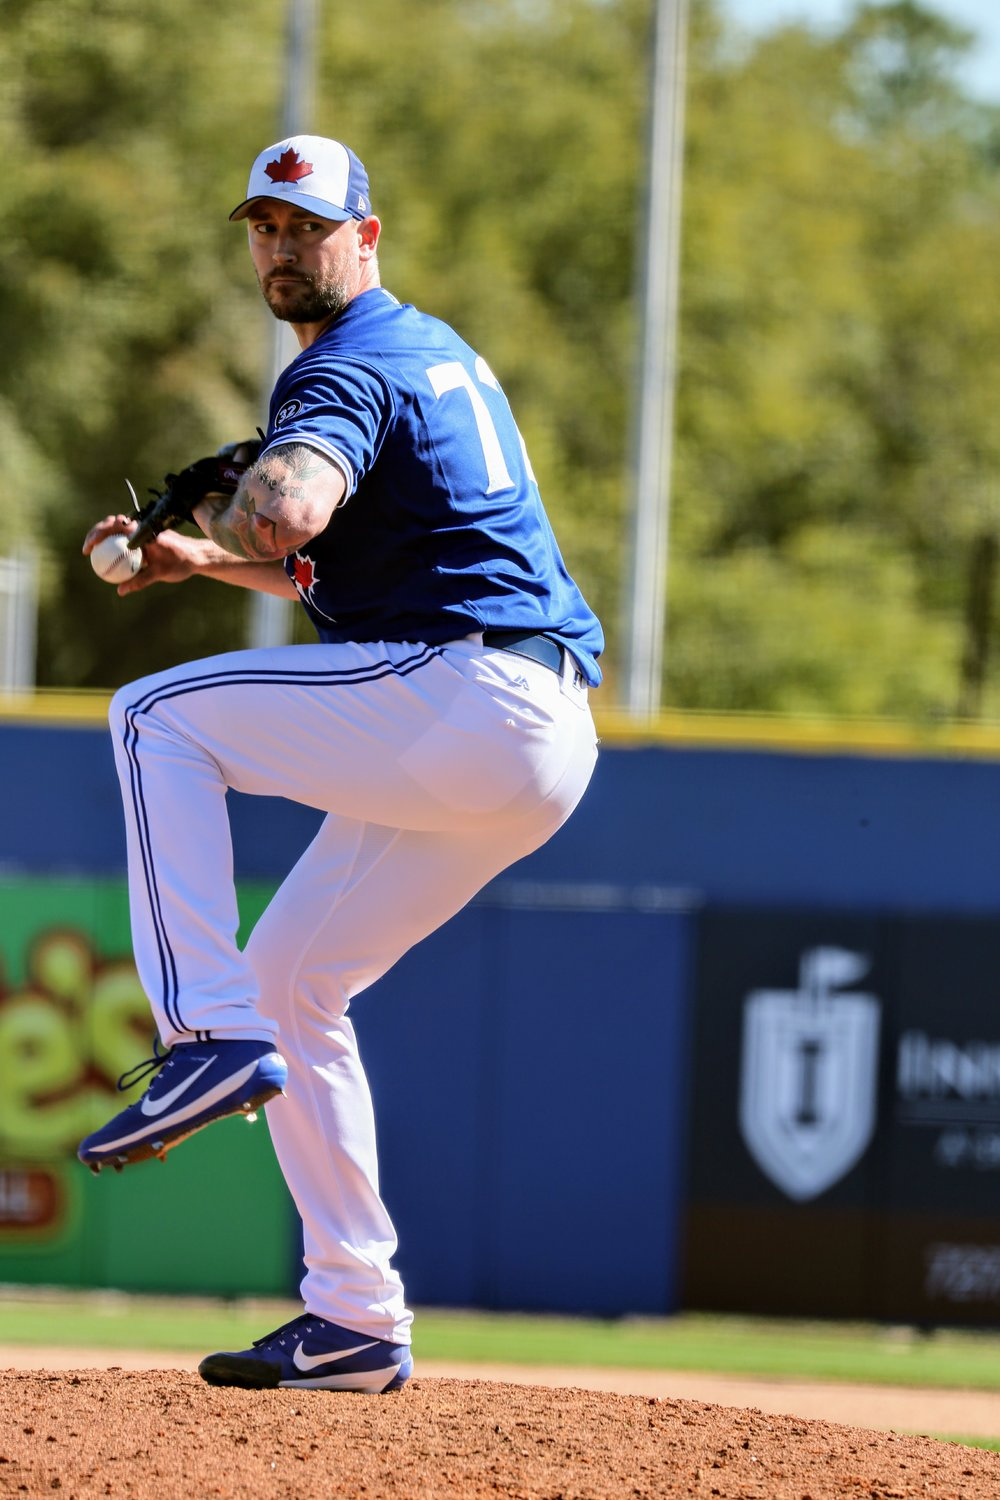 With closer Roberto Osuna on leave and facing an assault charge, Canadian John Axford (Port Dover, Ont.) is one of the relievers the Toronto Blue Jays could turn to in save situations. Photo Credit: Amanda Fewer